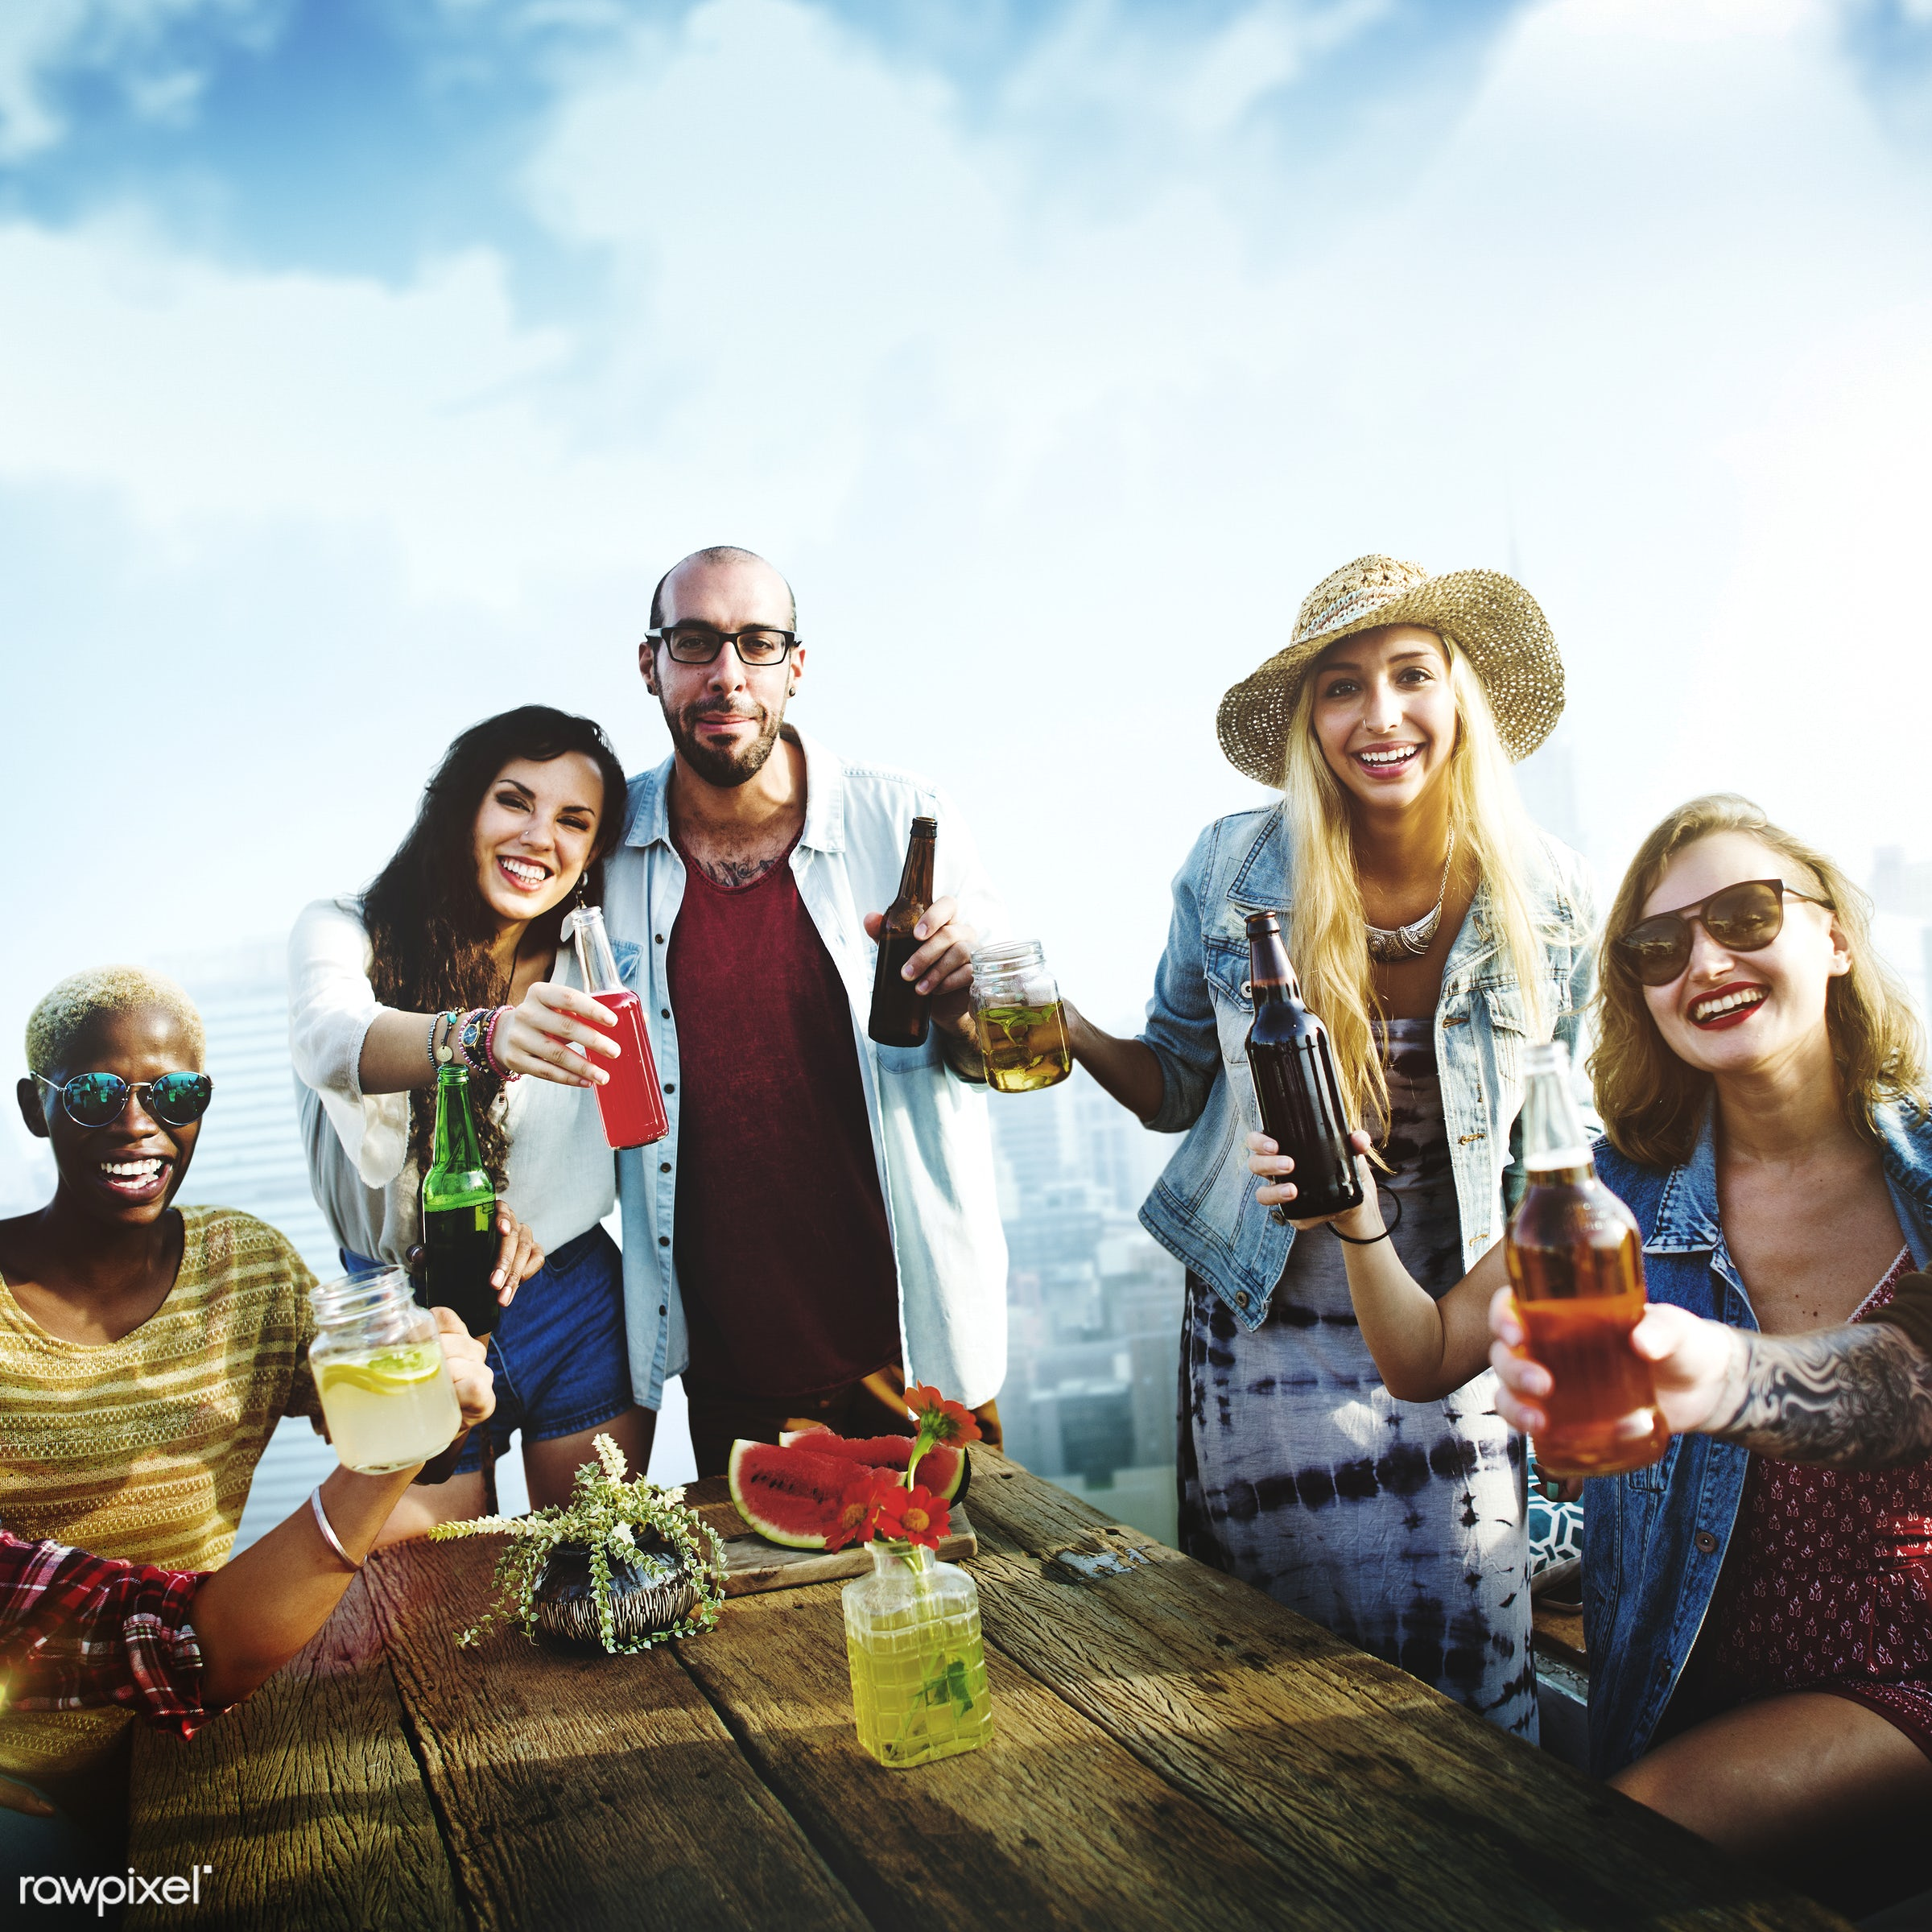 alcohol, beer, beverage, bonding, bright, buildings, casual, celebration, cheerful, cheers, city, day, diversity, drink,...